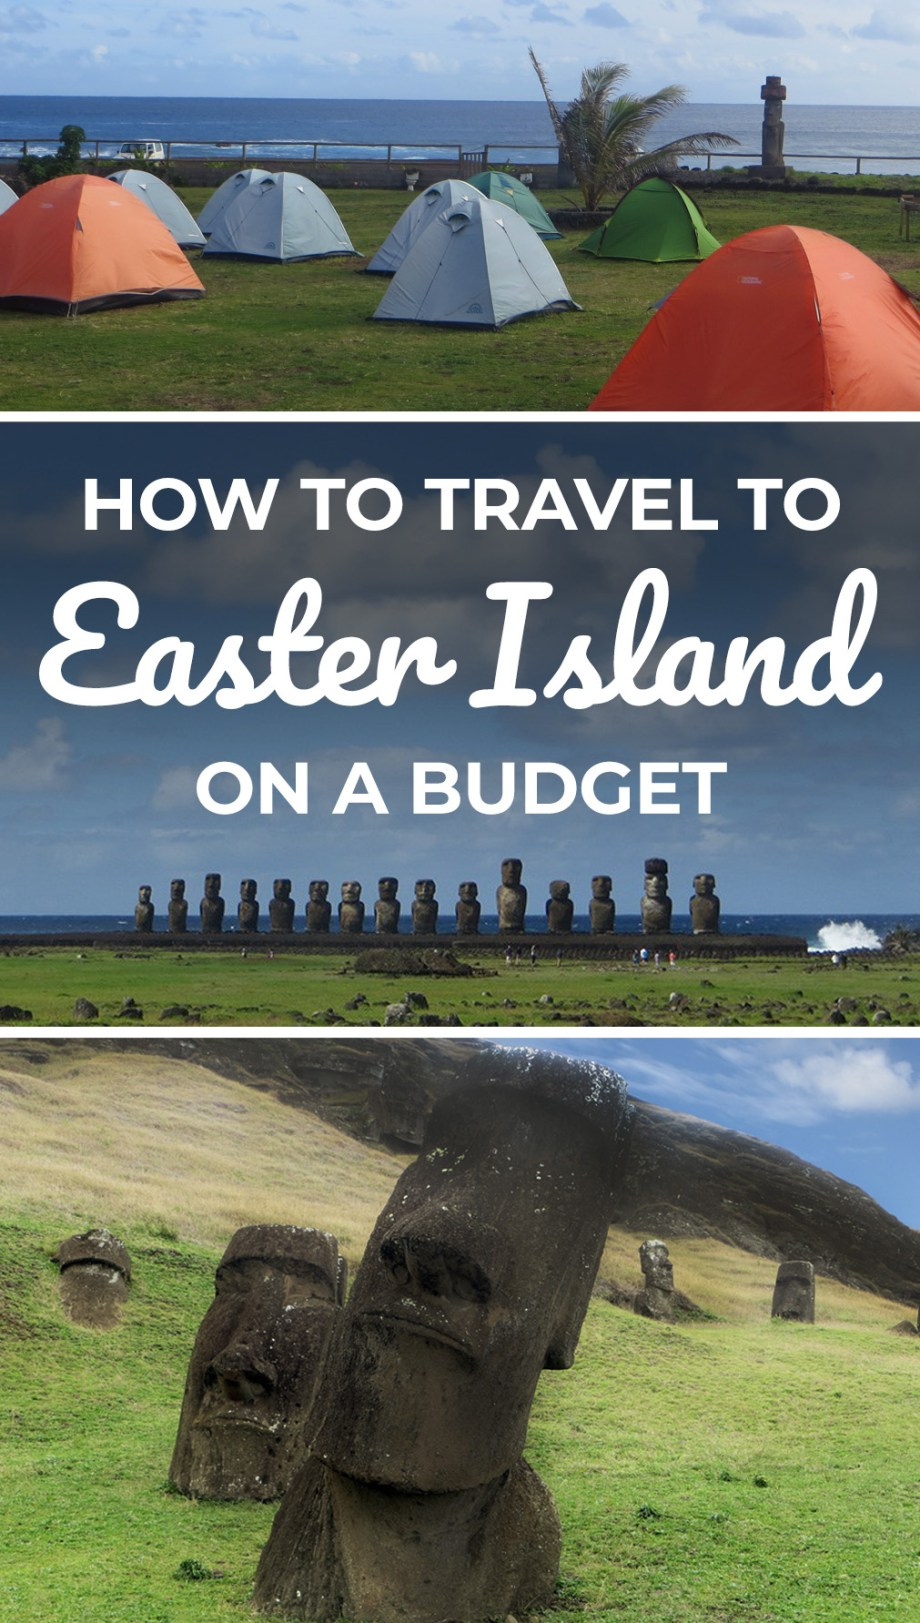 The mysterious Easter Island lies 3,600km off the coast of Chile. Covered in hundreds of Moai statues, it still holds the secrets of a lost civilisation. Many people dream of travelling there,but being so remote the cost of visiting is high. However, with a few simple tricks it is definitely possible to enjoy the island without breaking the bank.